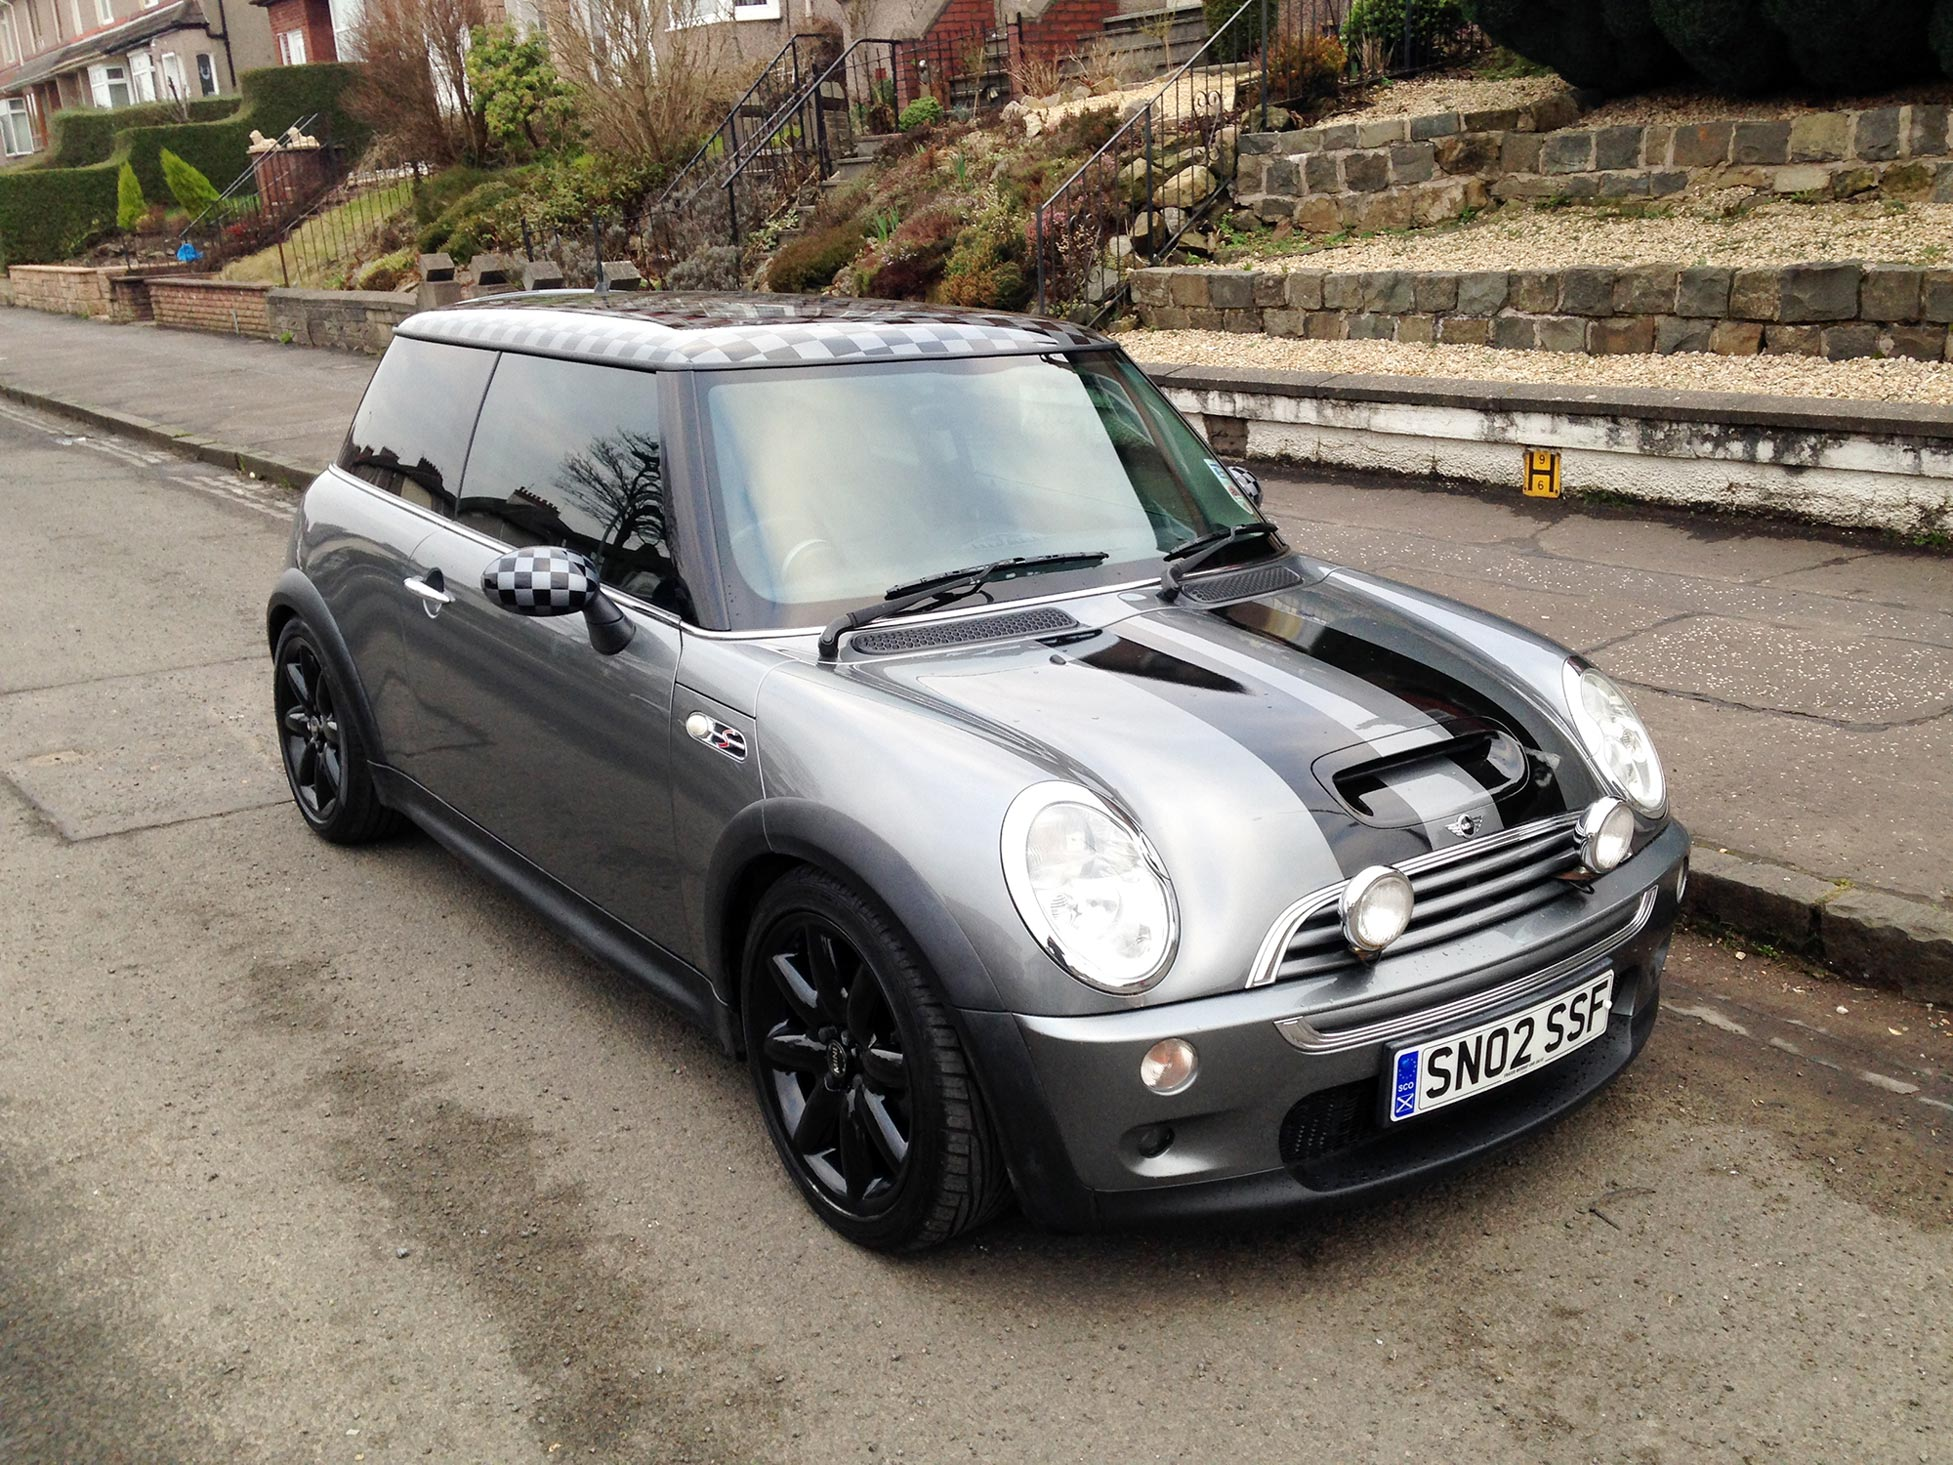 Mini Cooper S With Chequered Roof And Mirror Graphics And Stripes